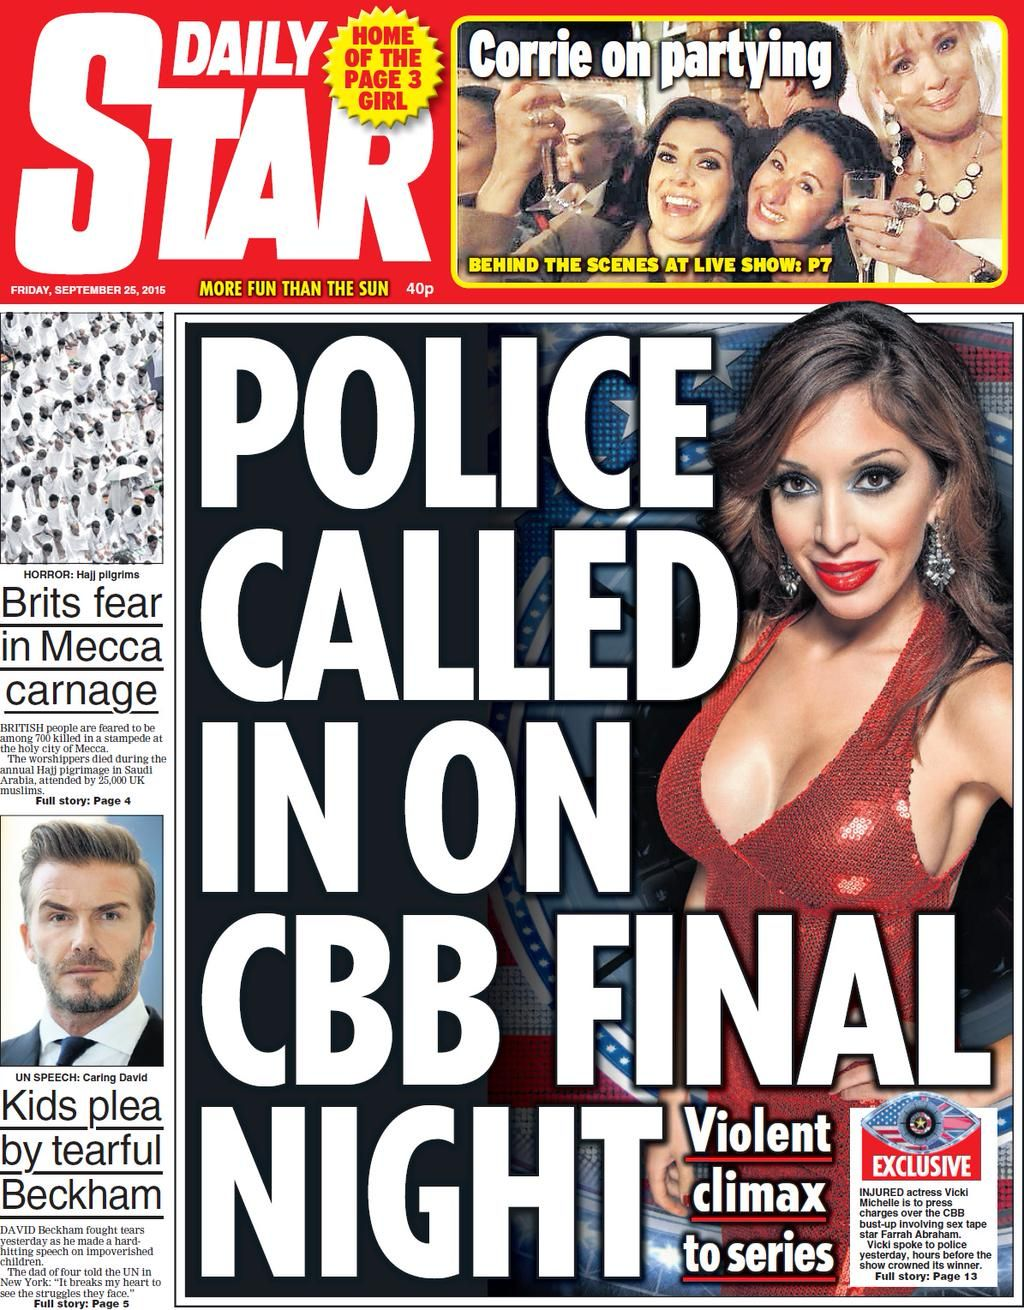 Nick Sutton on Daily star, Police call